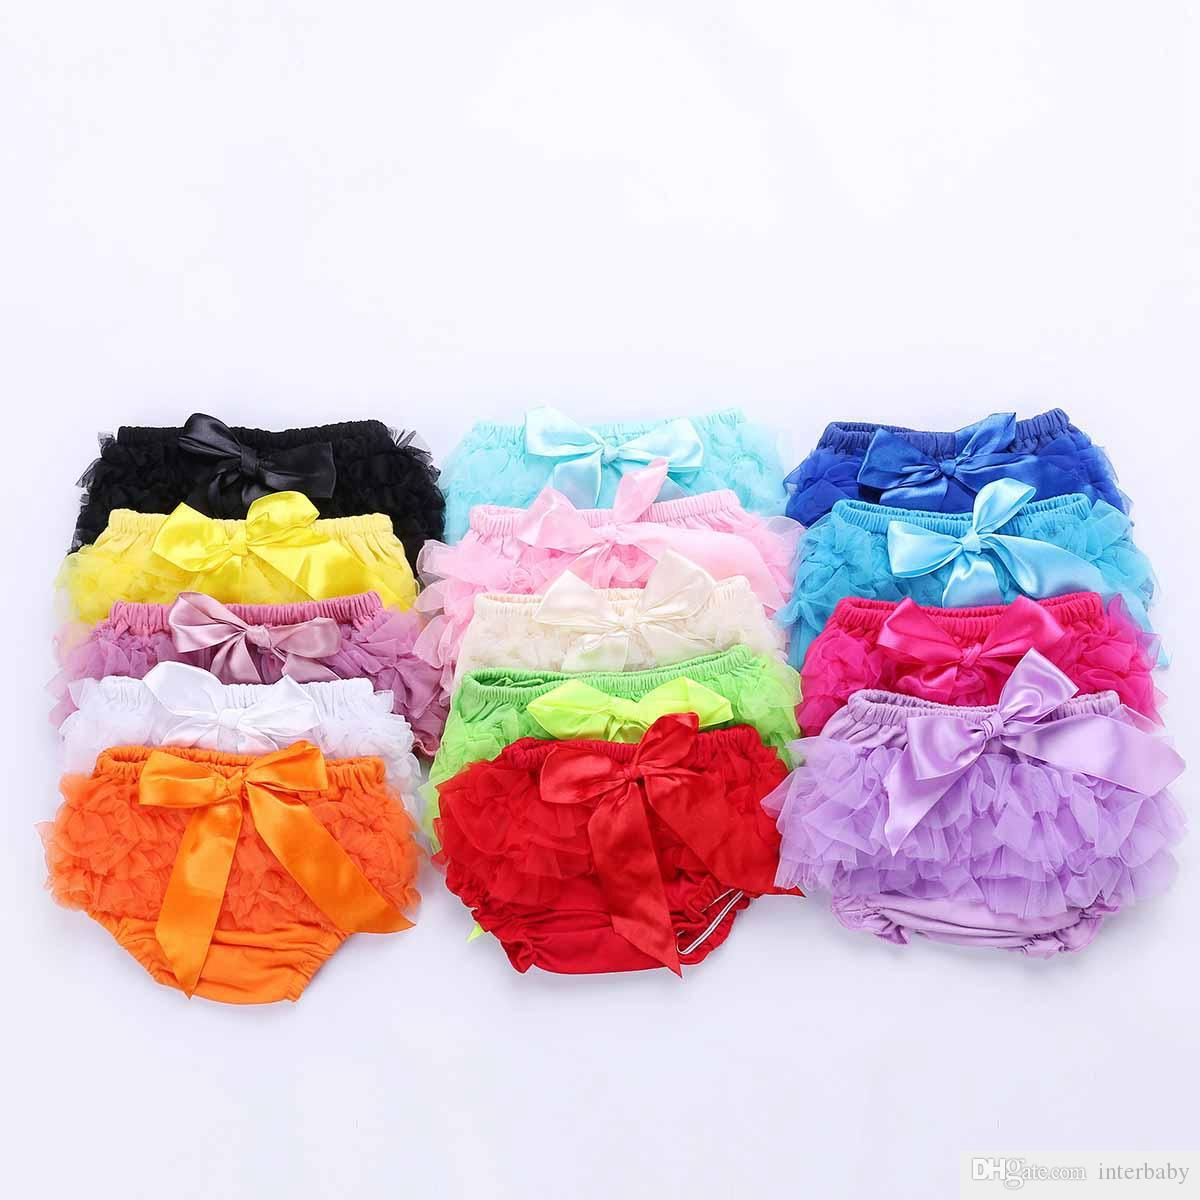 Baby Skirt Ruffles Chiffon Bloomer Tutu Skorts Infant Cotton Bow PP Shorts Kids Lovely Skirt Diaper Cover Underwear Skirts YFA555